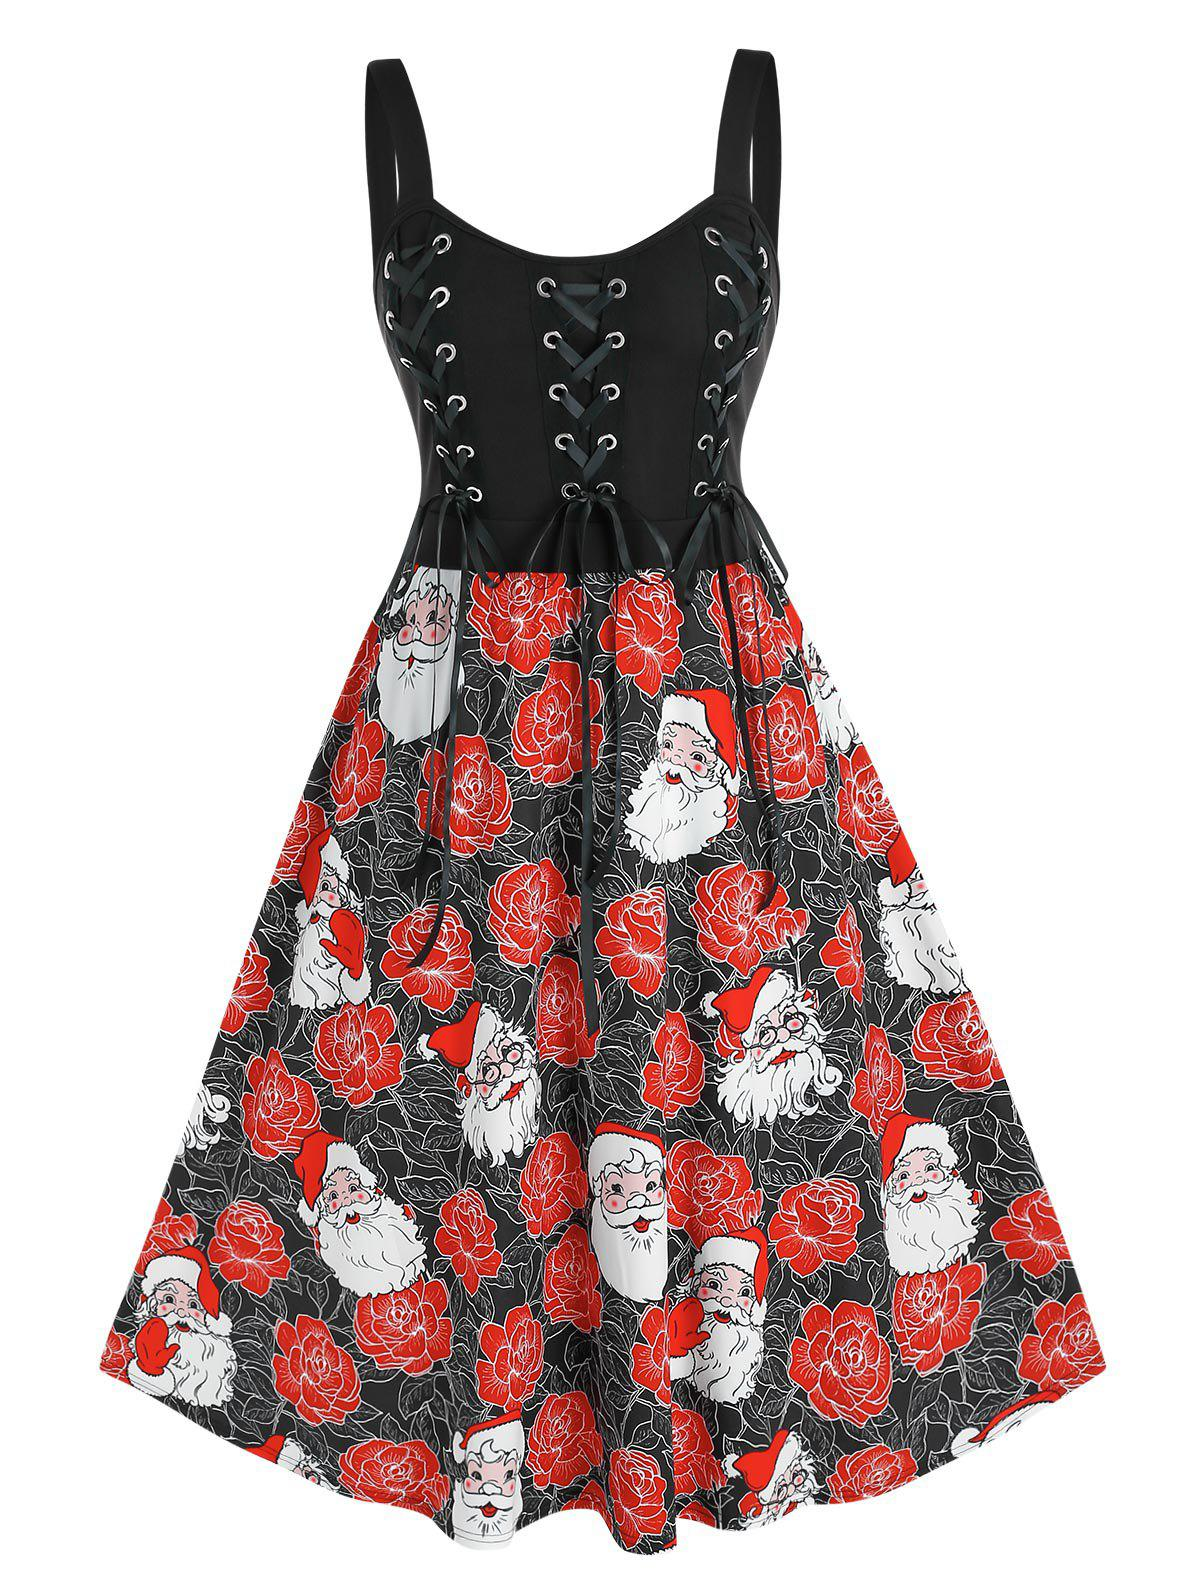 Plus Size Lace-up Christmas Santa Claus Flower Flared Dress - BLACK 5X